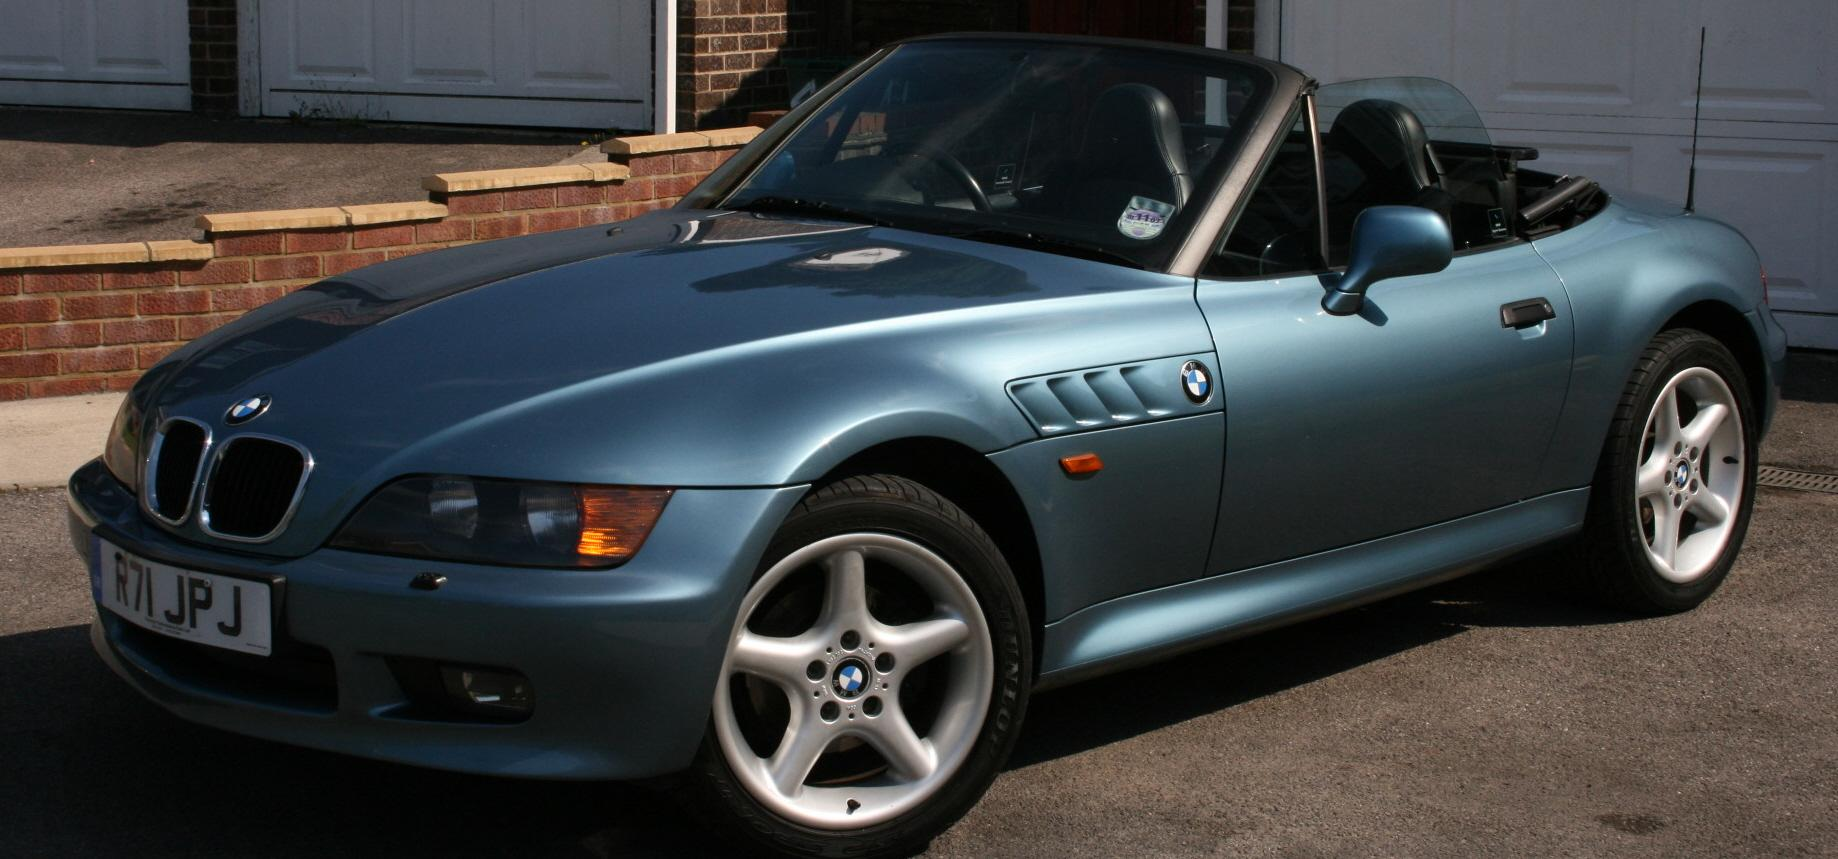 Alexdavies7 1997 Bmw Z3 Specs Photos Modification Info